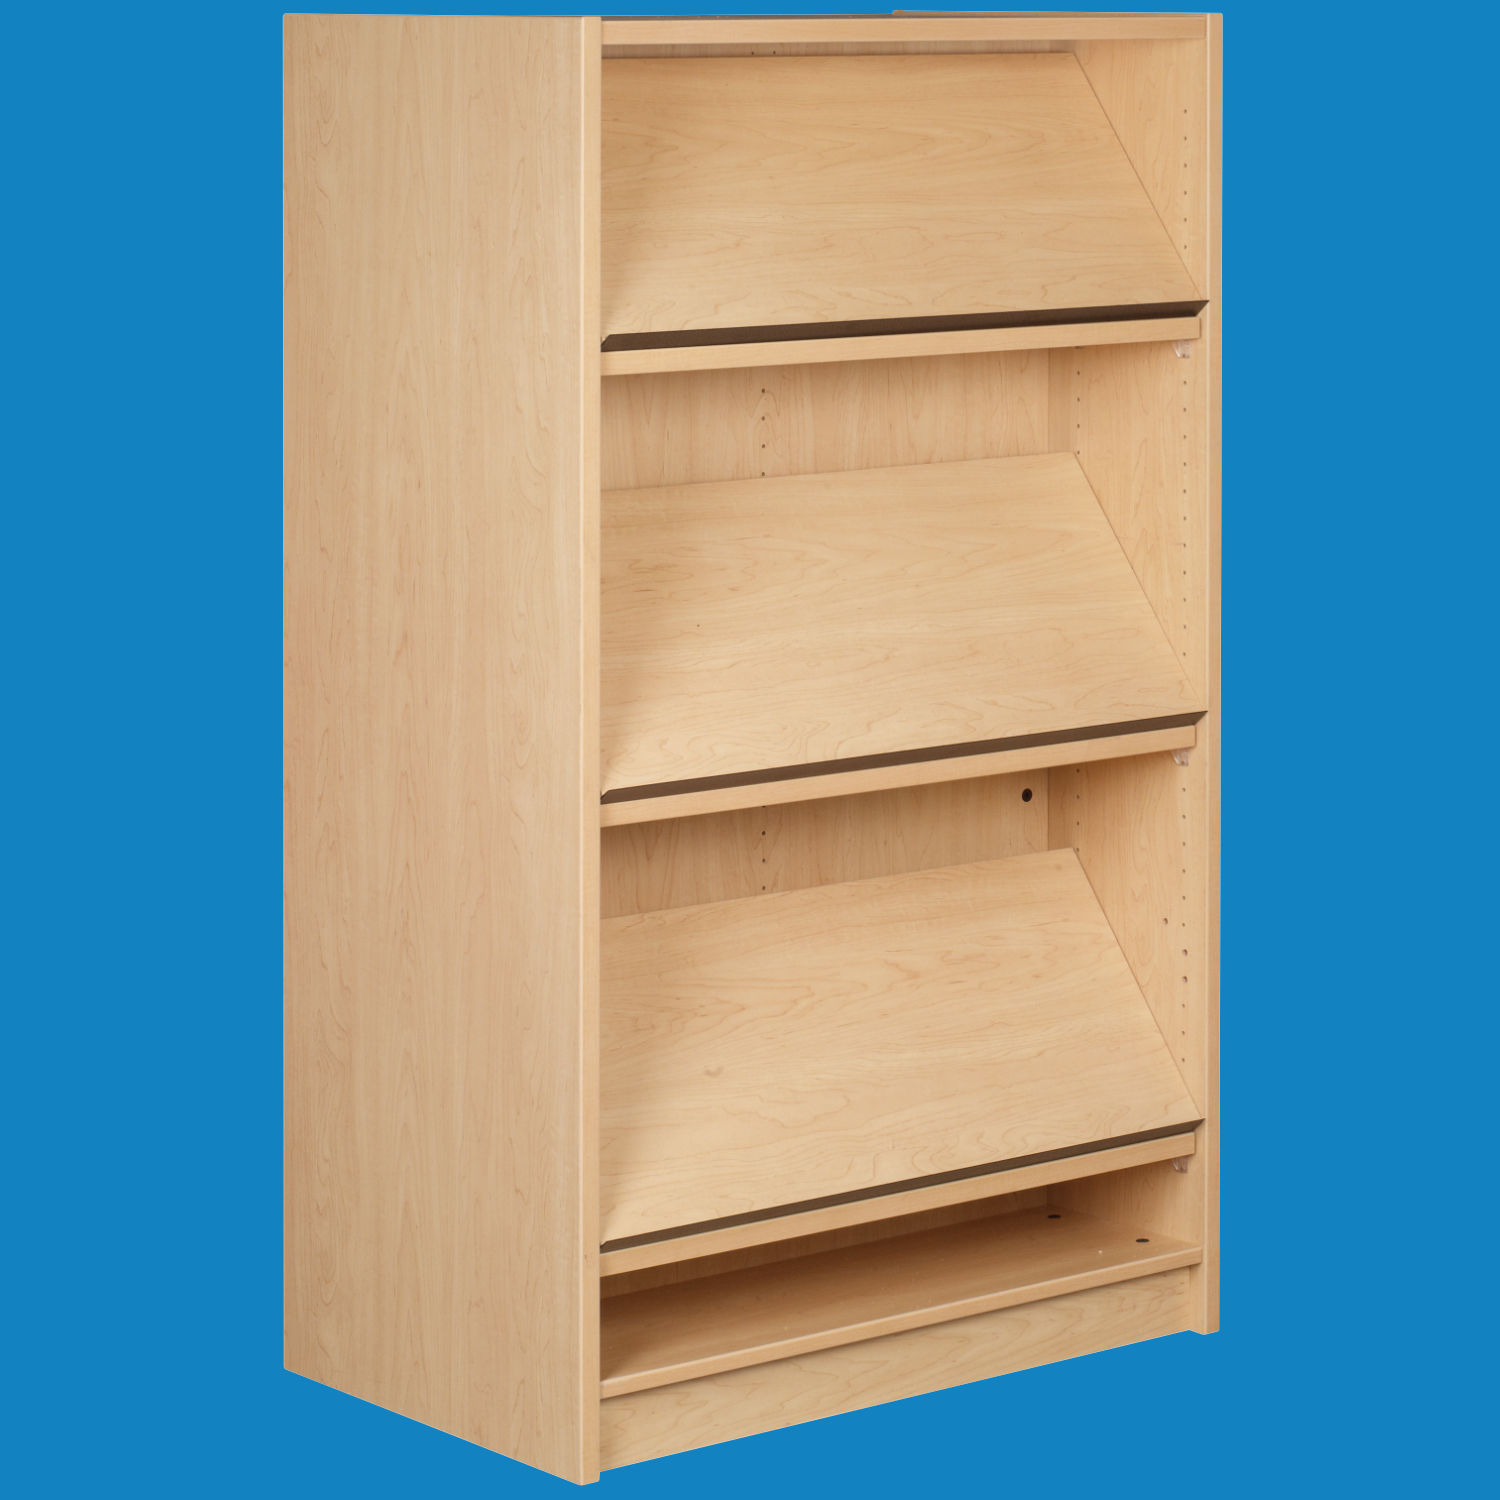 Shelving - Accessories